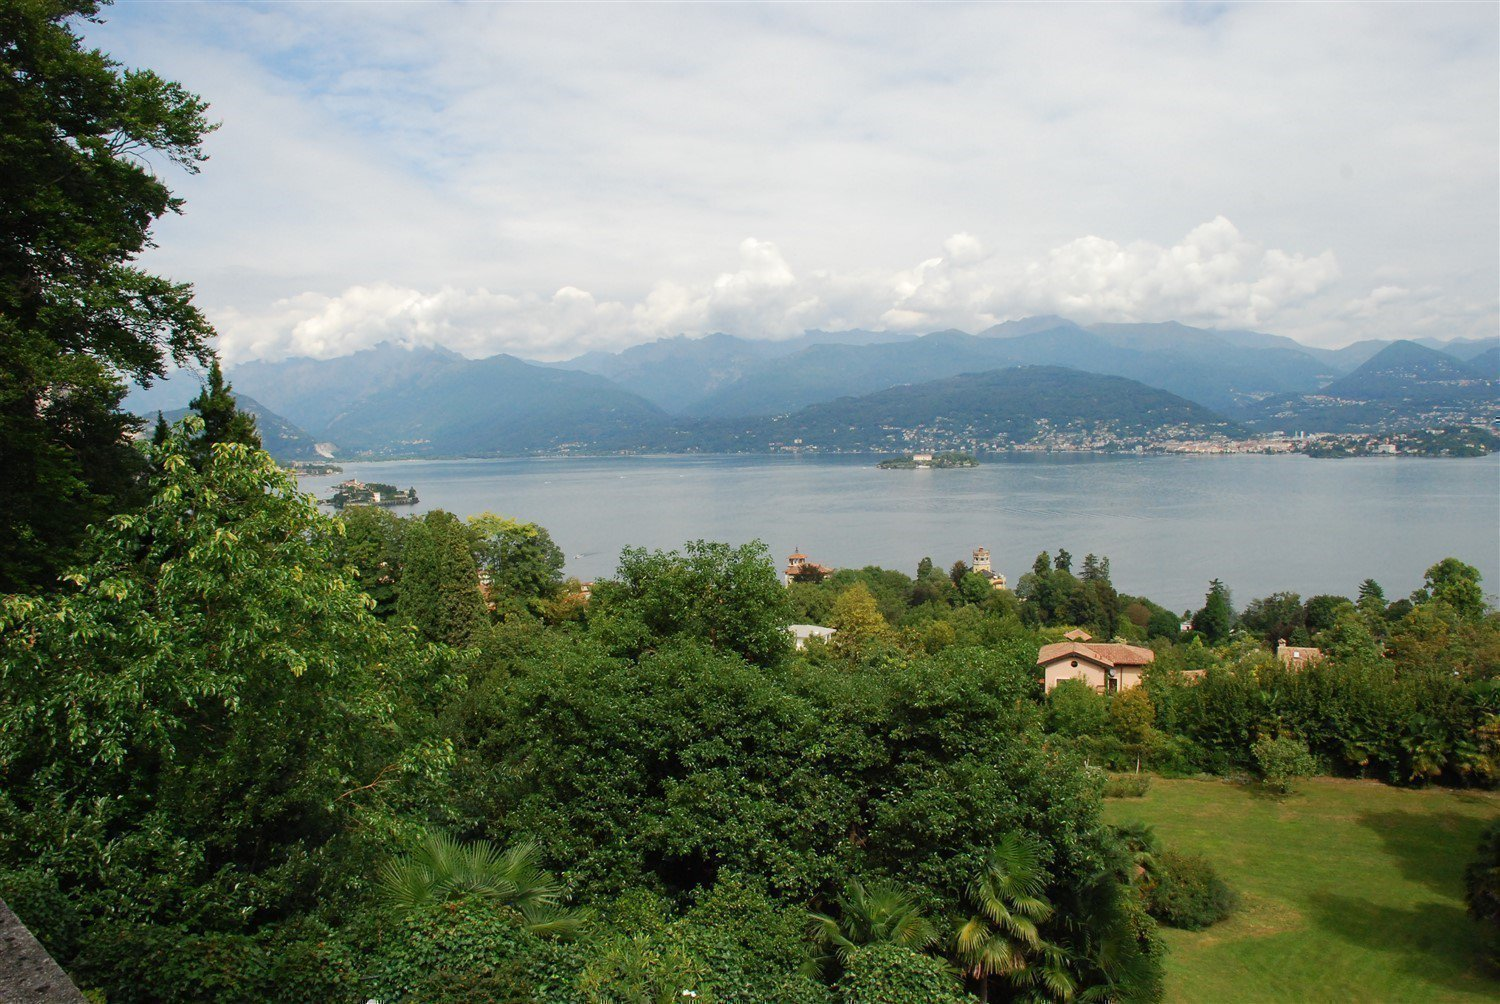 Luxurious apartment for sale in Stresa - lake view